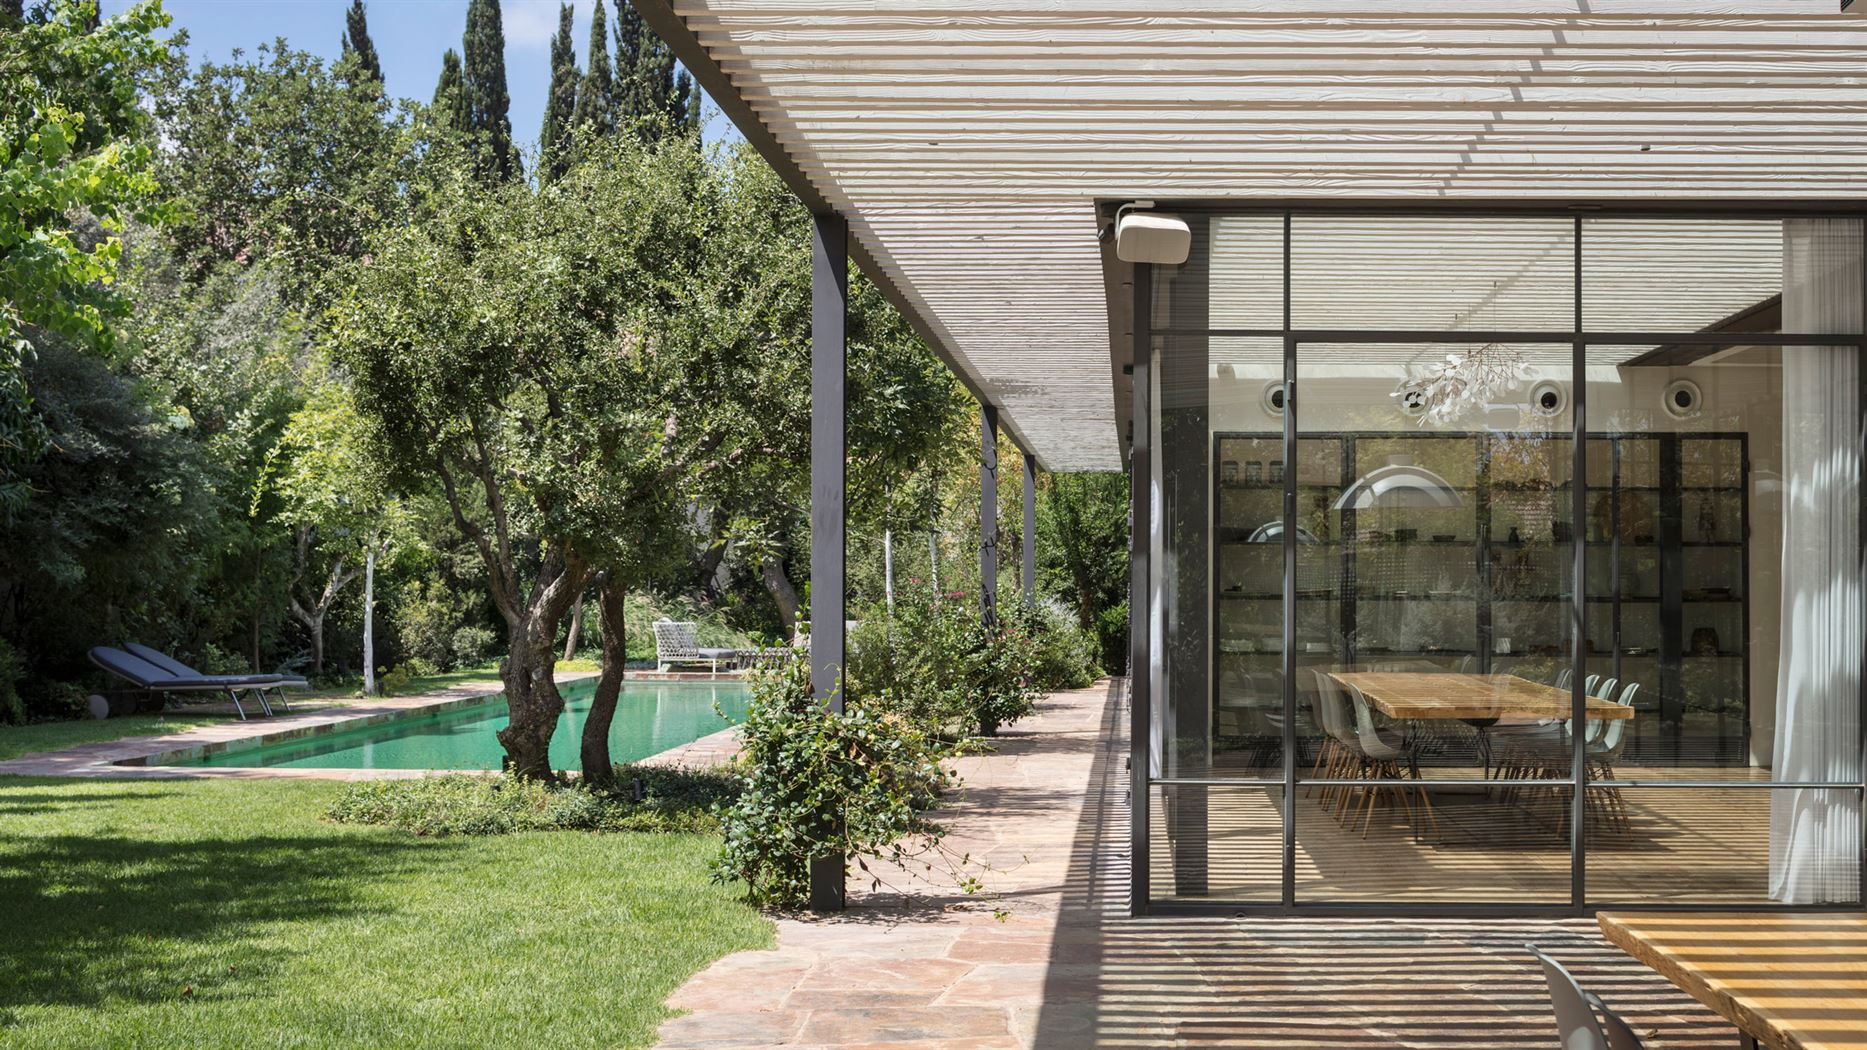 m-house-pitsou-kedem-architecture-residential-israel_dezeen_hero-2 (1)